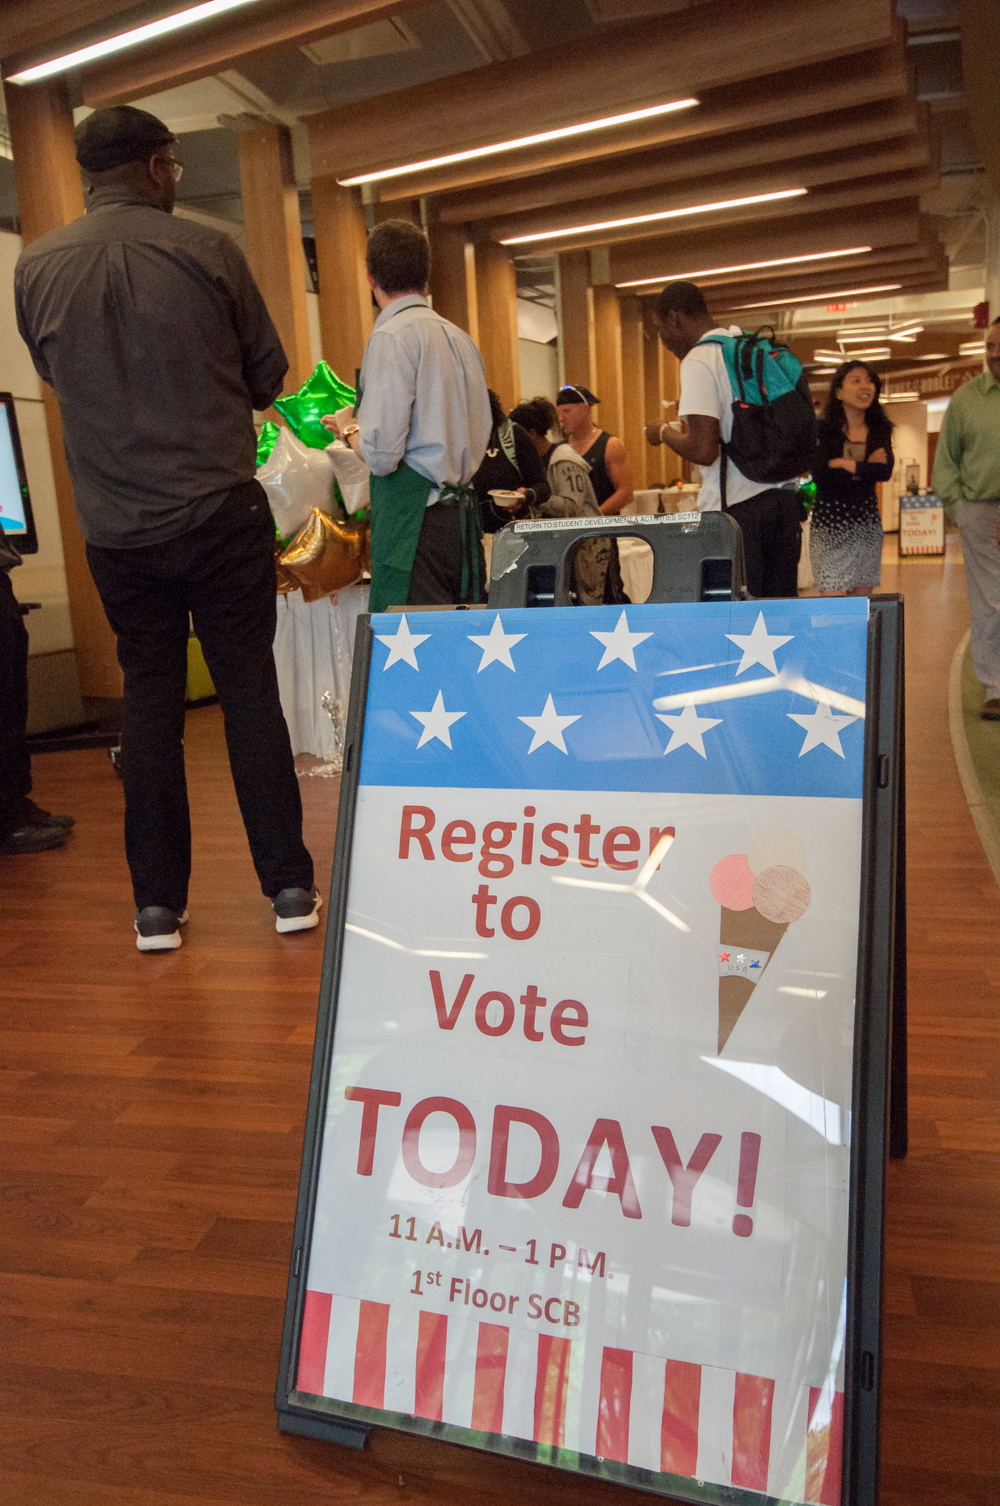 Voter registration drive at Washtenaw Community College.